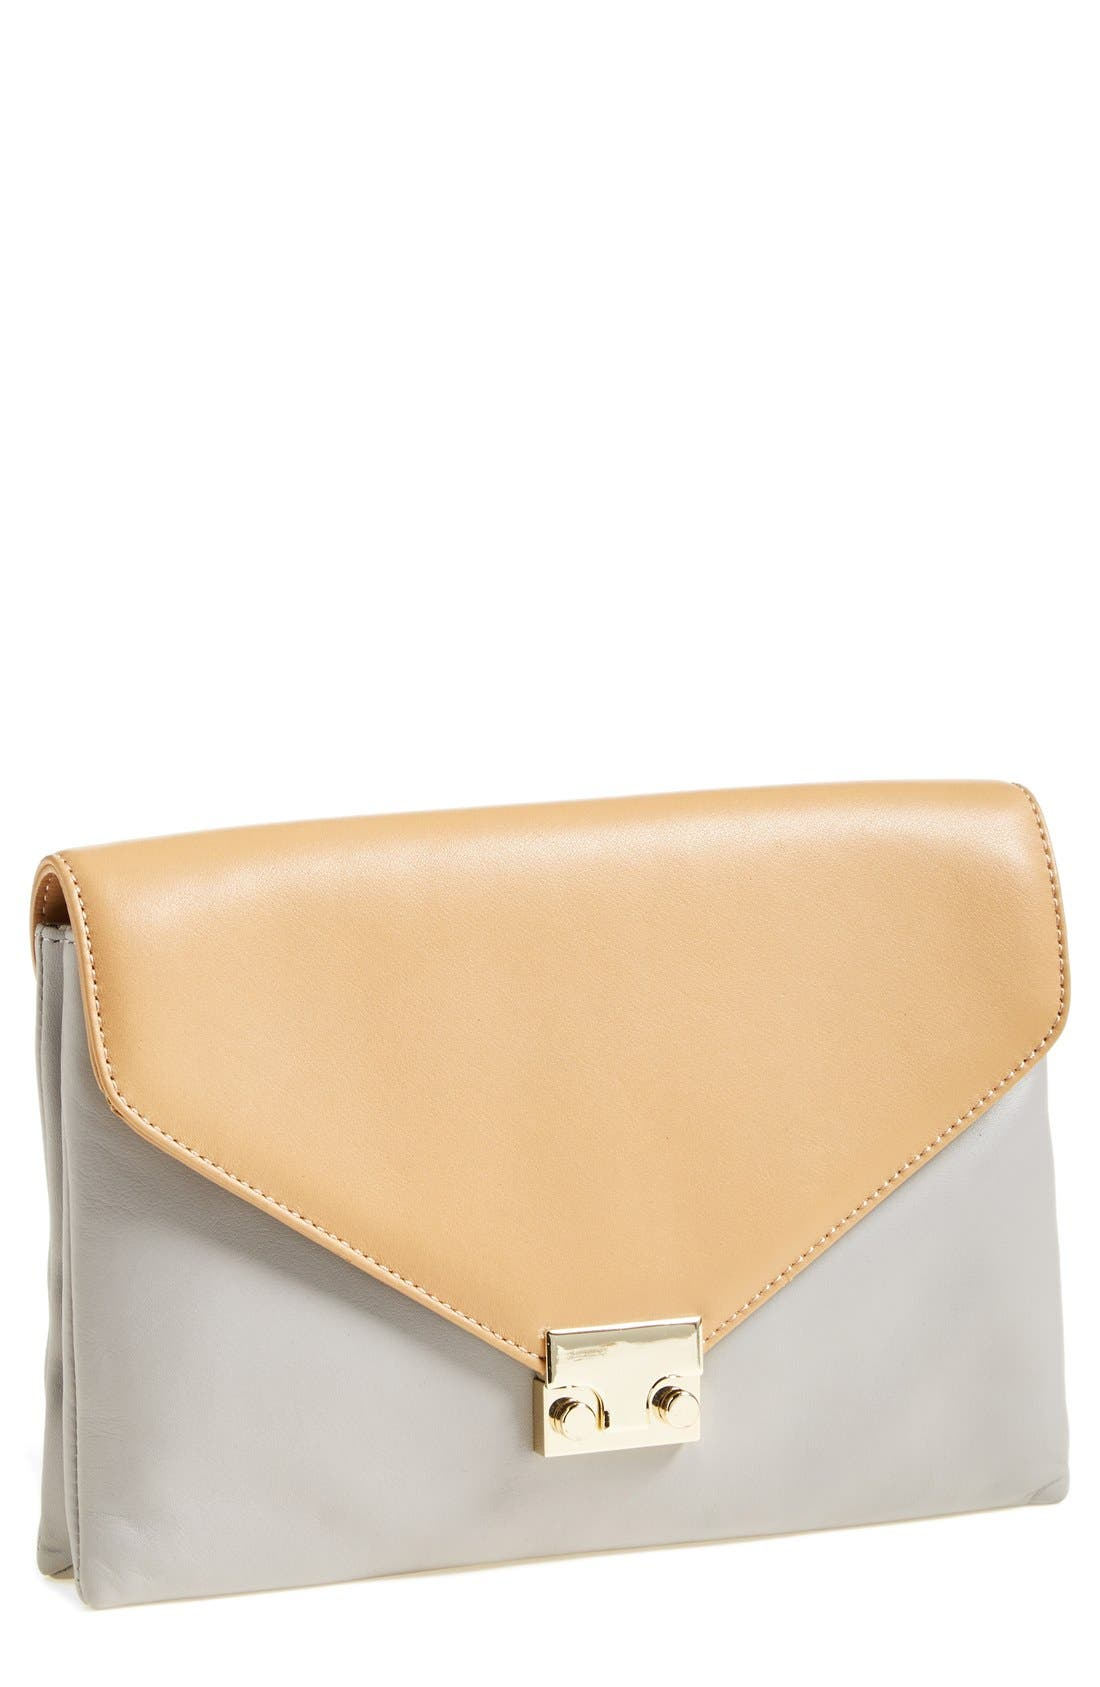 Main Image - Loeffler Randall 'Lock' Leather Clutch, Small